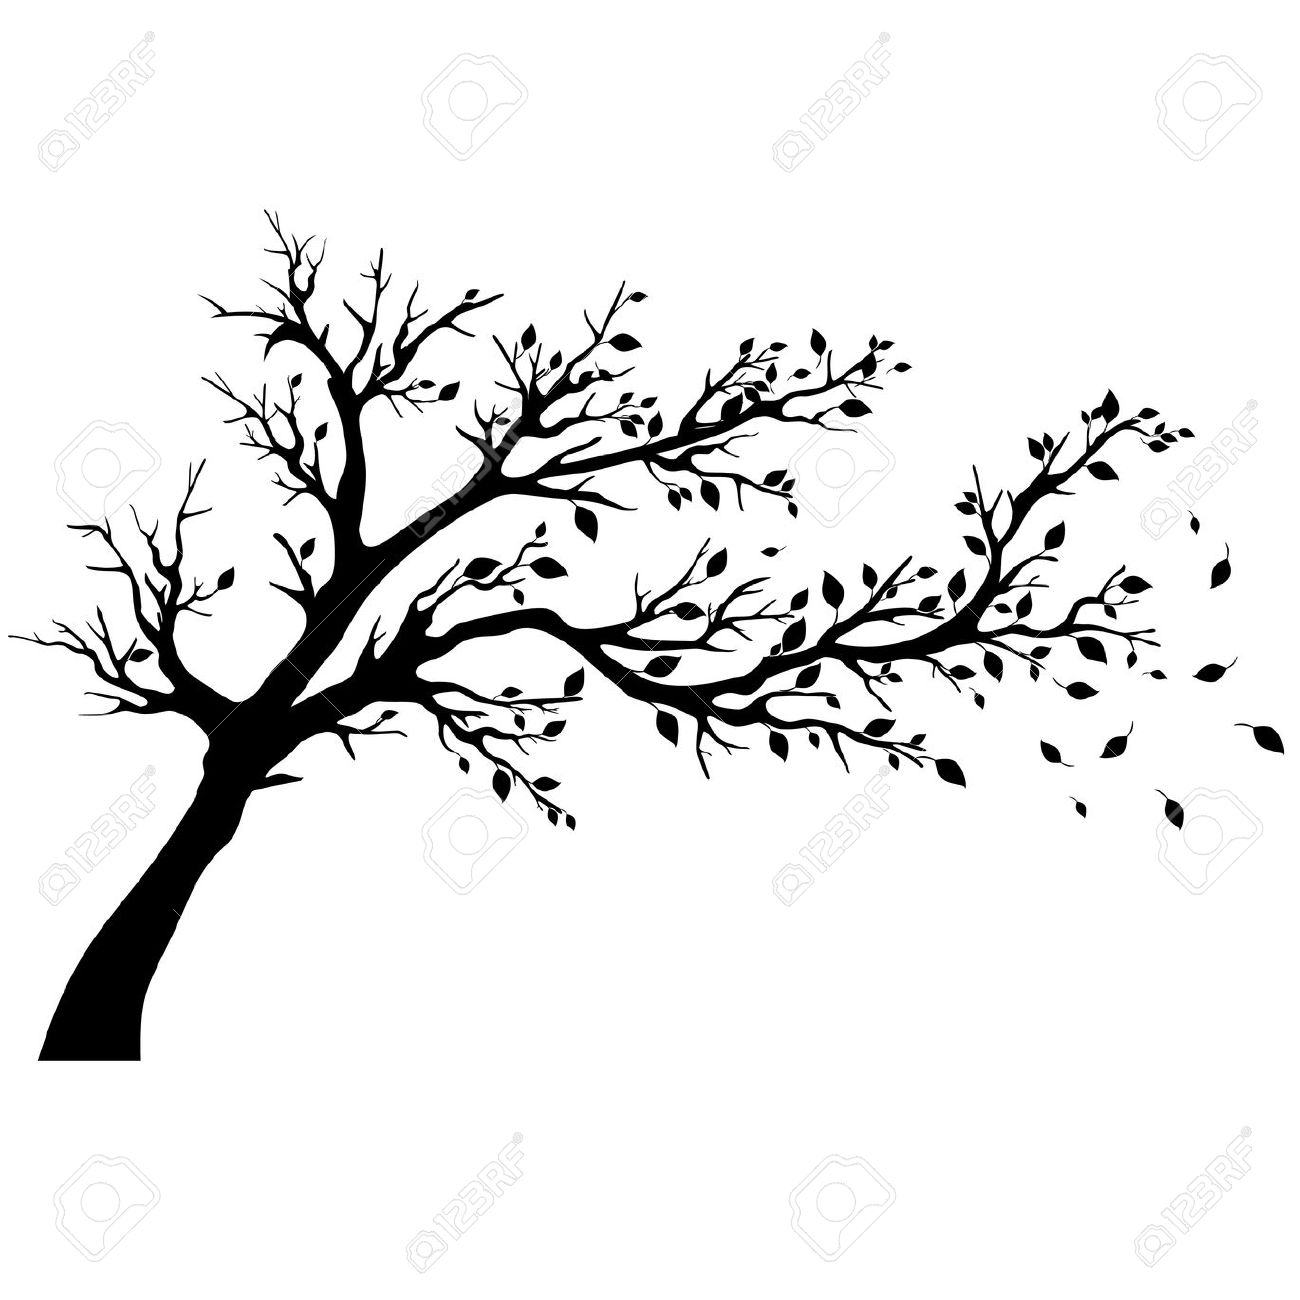 Tree Silhouette Black Clipart